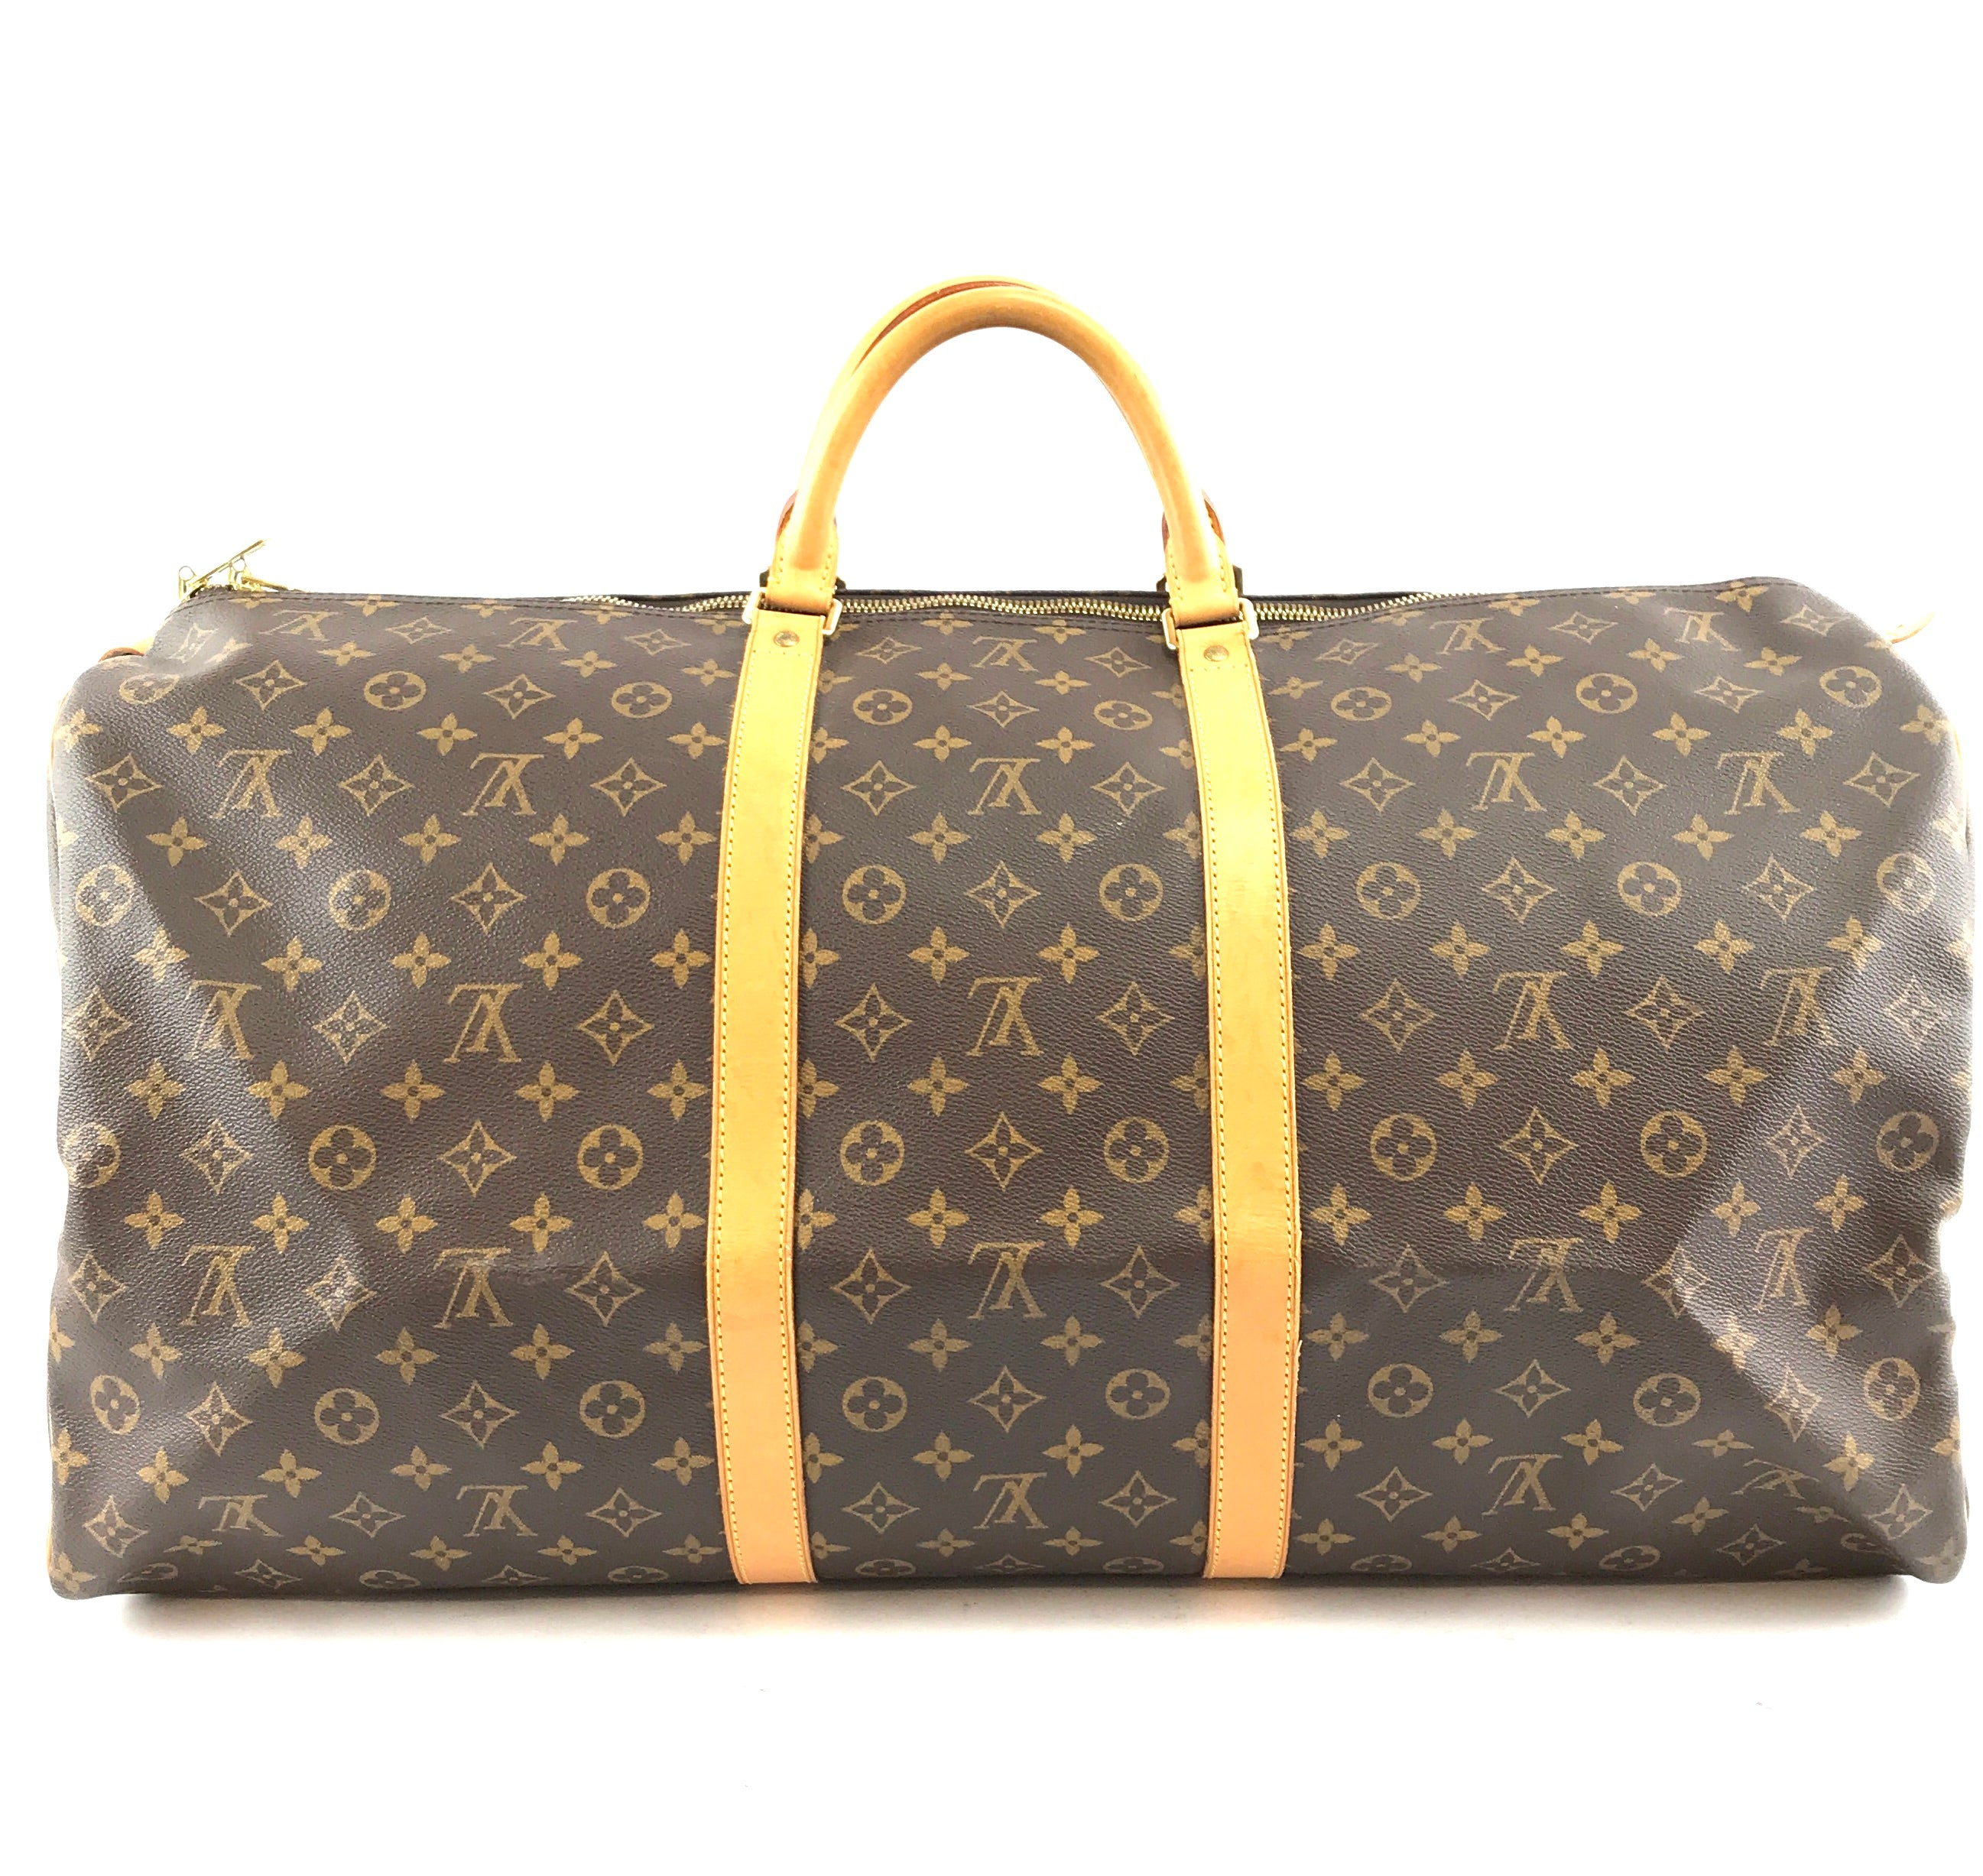 Louis Vuitton Keepall 60 Monogram Canvas